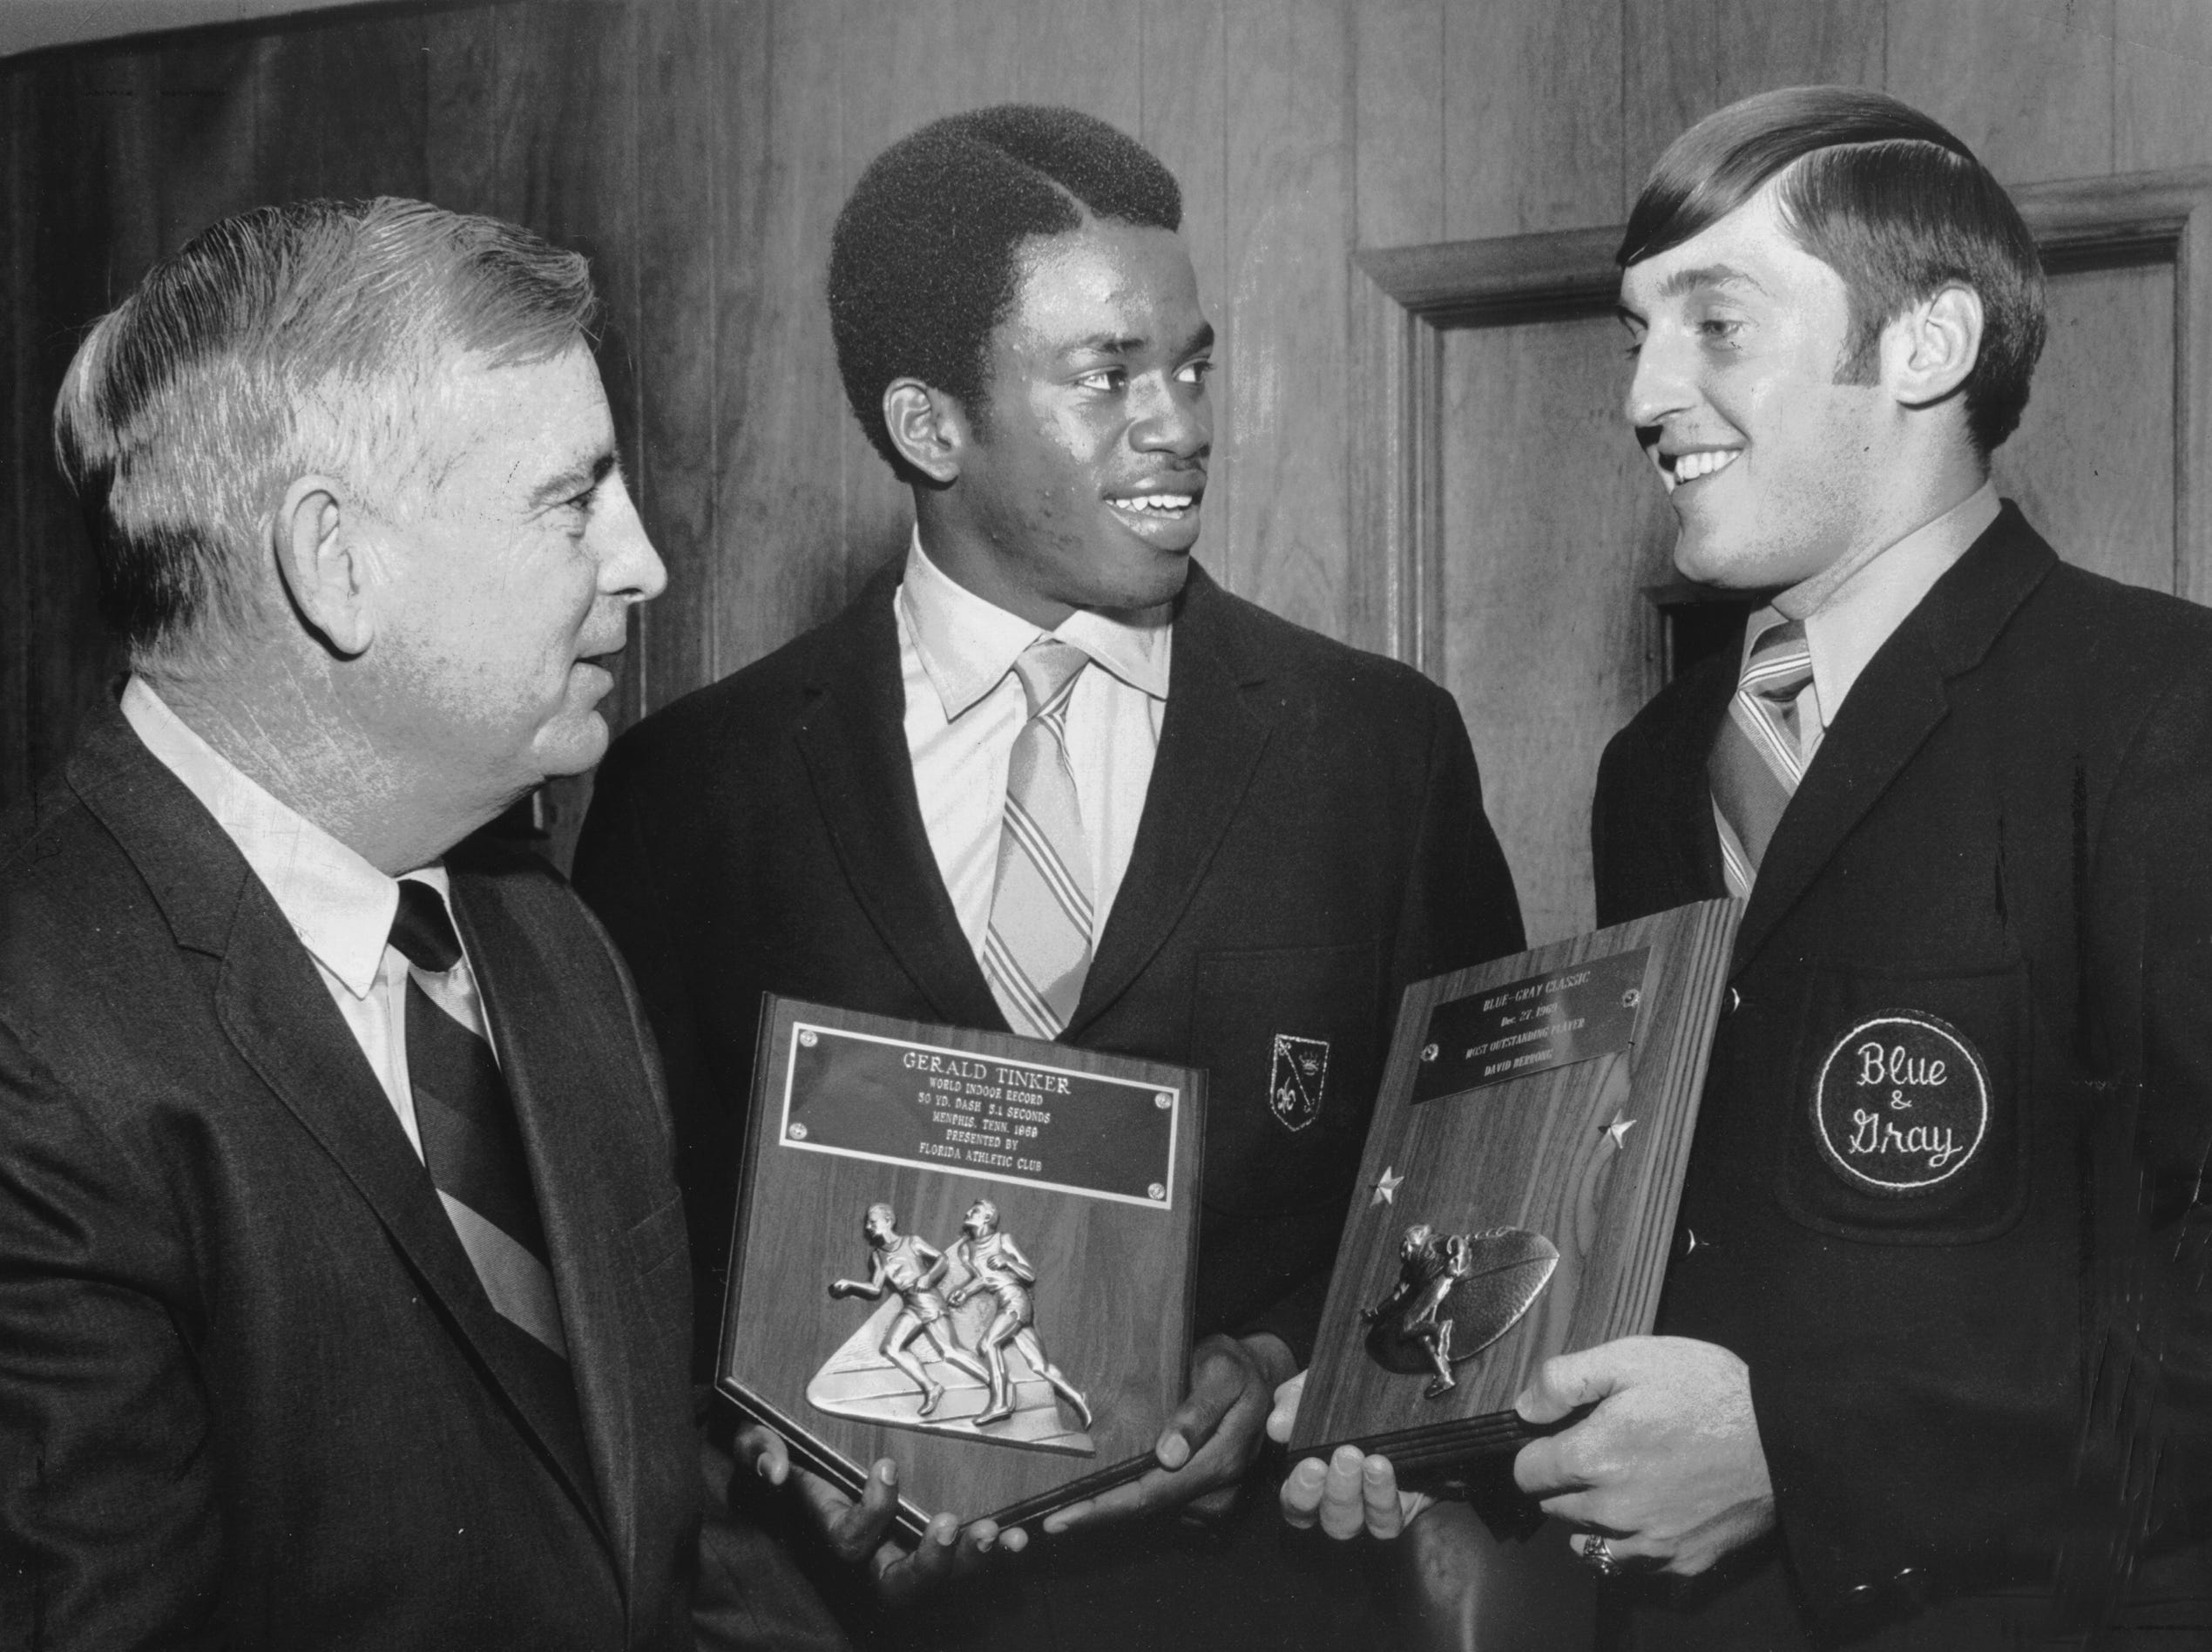 Memphis State?s Billy Murphy (left), Gerald Tinker (center) and David Berrong discuss hardware the two Memphis State University athletes had collected in December 1969. Tinker holds a plaque proclaiming his world indoor record in the 50-yard dash at 5.1 seconds, presented by the Florida Athletic Club, while Berrong holds a plaque for being the most outstanding player in the Blue-Gray Classic football game on Dec. 27, 1969.